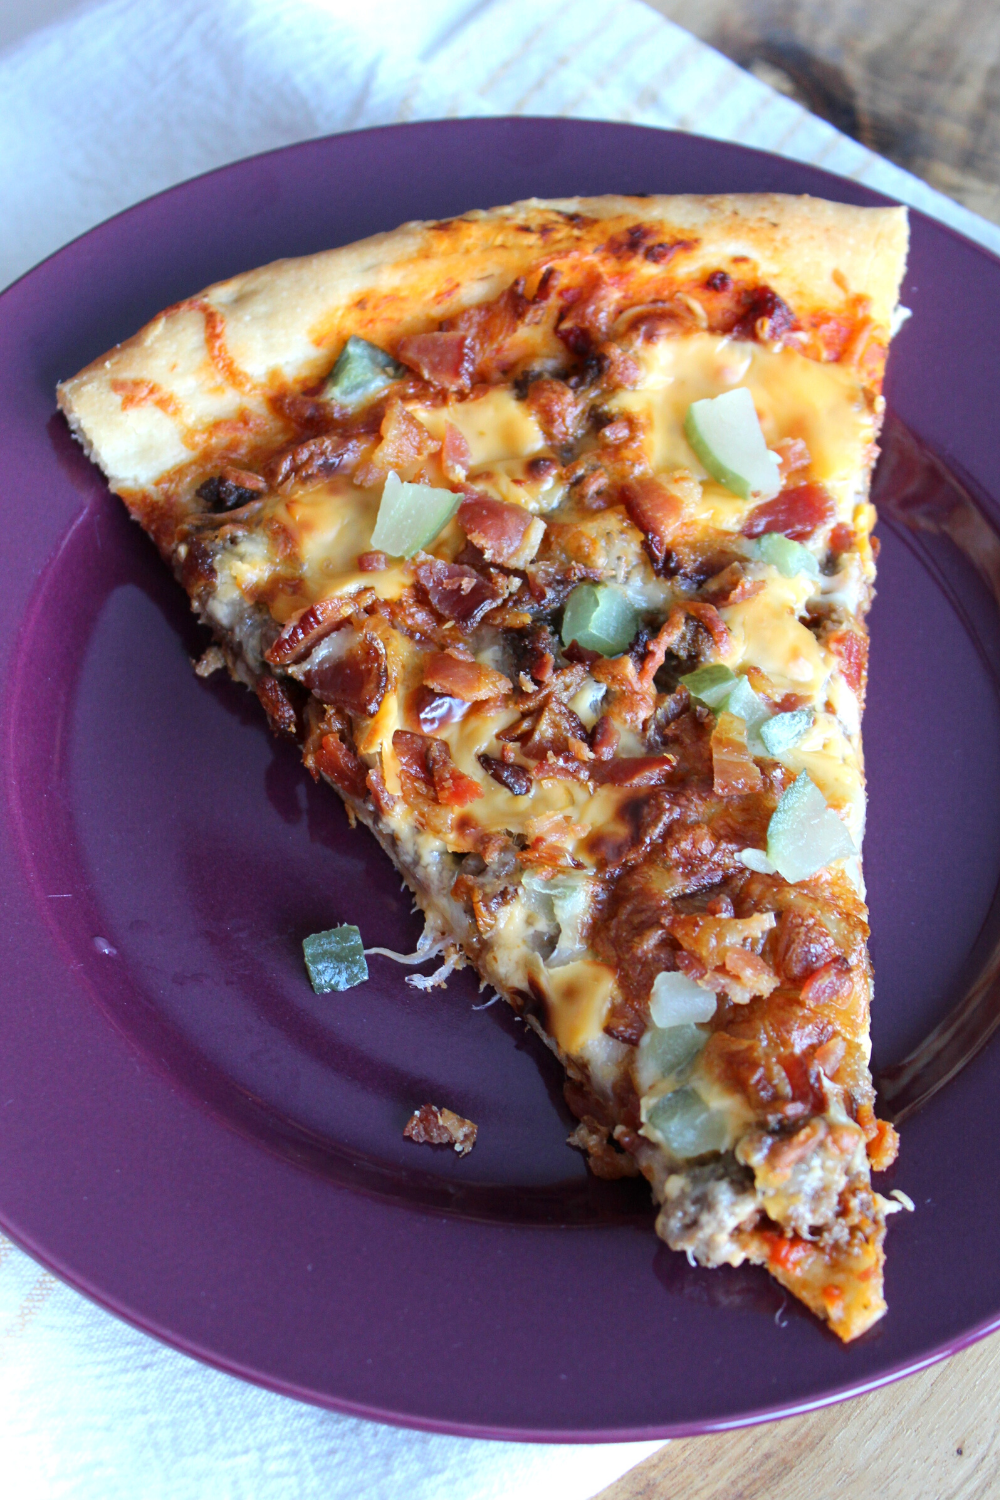 Homemade Bacon Cheeseburger Pizza Recipe Crisp and Chewy Crust with a rich tomato sauce topped with ground beef mozzarella and American cheese bacon and dill pickles My Farmhouse Table Quick and Easy The Best Pizza Recipe for Making at Home